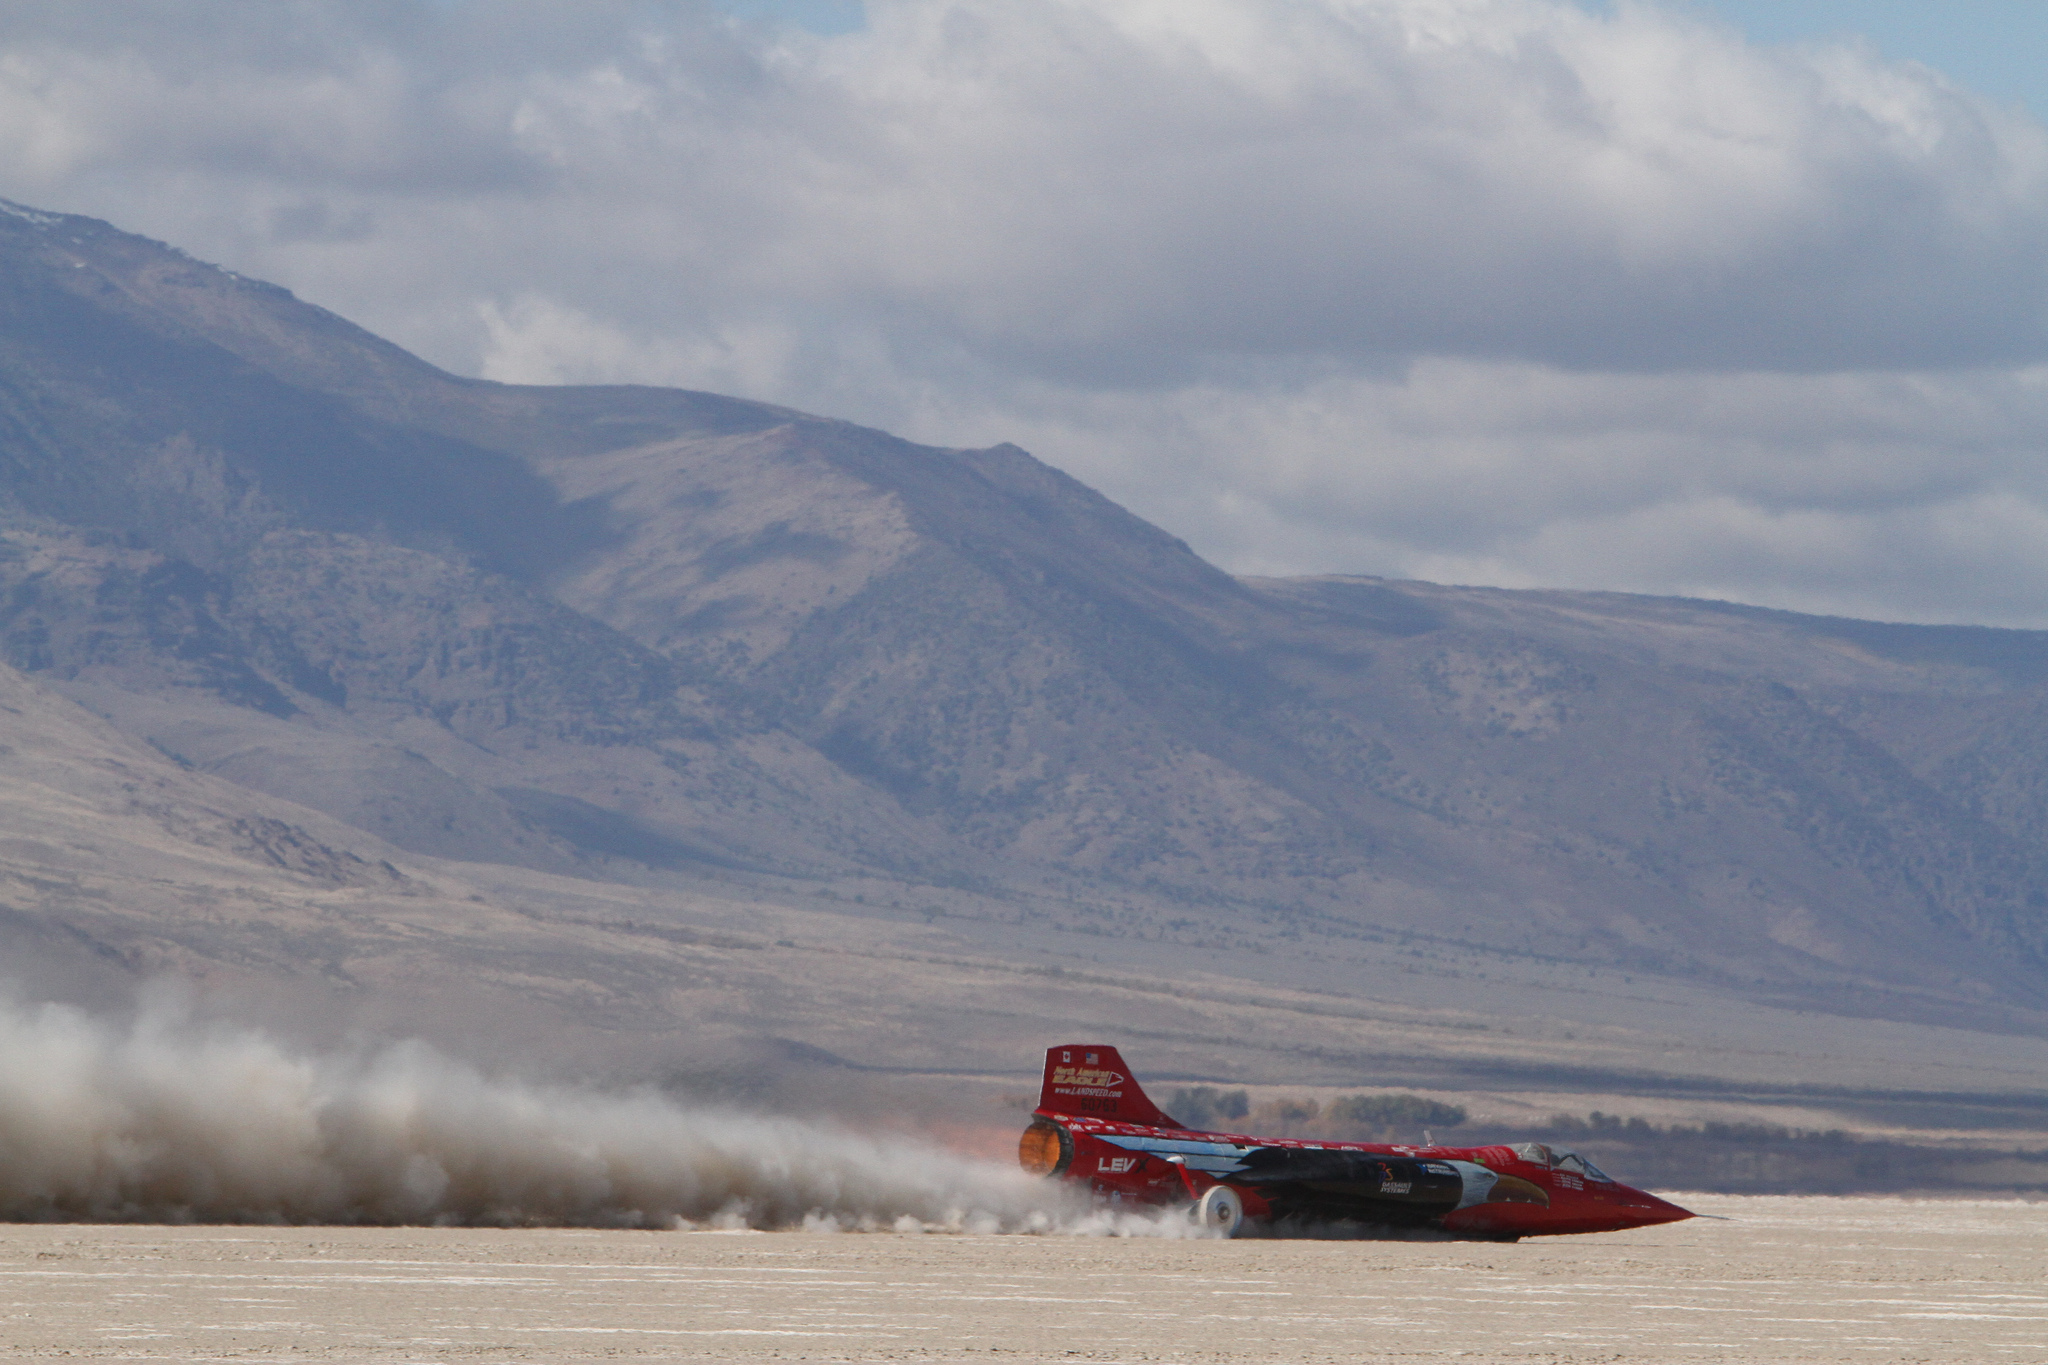 Jessi Combs recently broke the landspeed record for a woman while driving the North American Eagle Supersonic Speed Challenger, shown here at 515 miles per hour. Use of Dassault Systemes' 3DEXPERIENCE platform helps North American Eagle team members simulate and analyze fuels, lubricants and materials to understand their impact on vehicle performance and help the team stay ahead of their British counterparts in the pursuit of major land speed records. North American Eagle will speak today at Dassault Systemes' 3DEXPERIENCE Customer FORUM event in Las Vegas. Follow NAE's presentation on twitter #3DXforum (Photo: Business Wire)